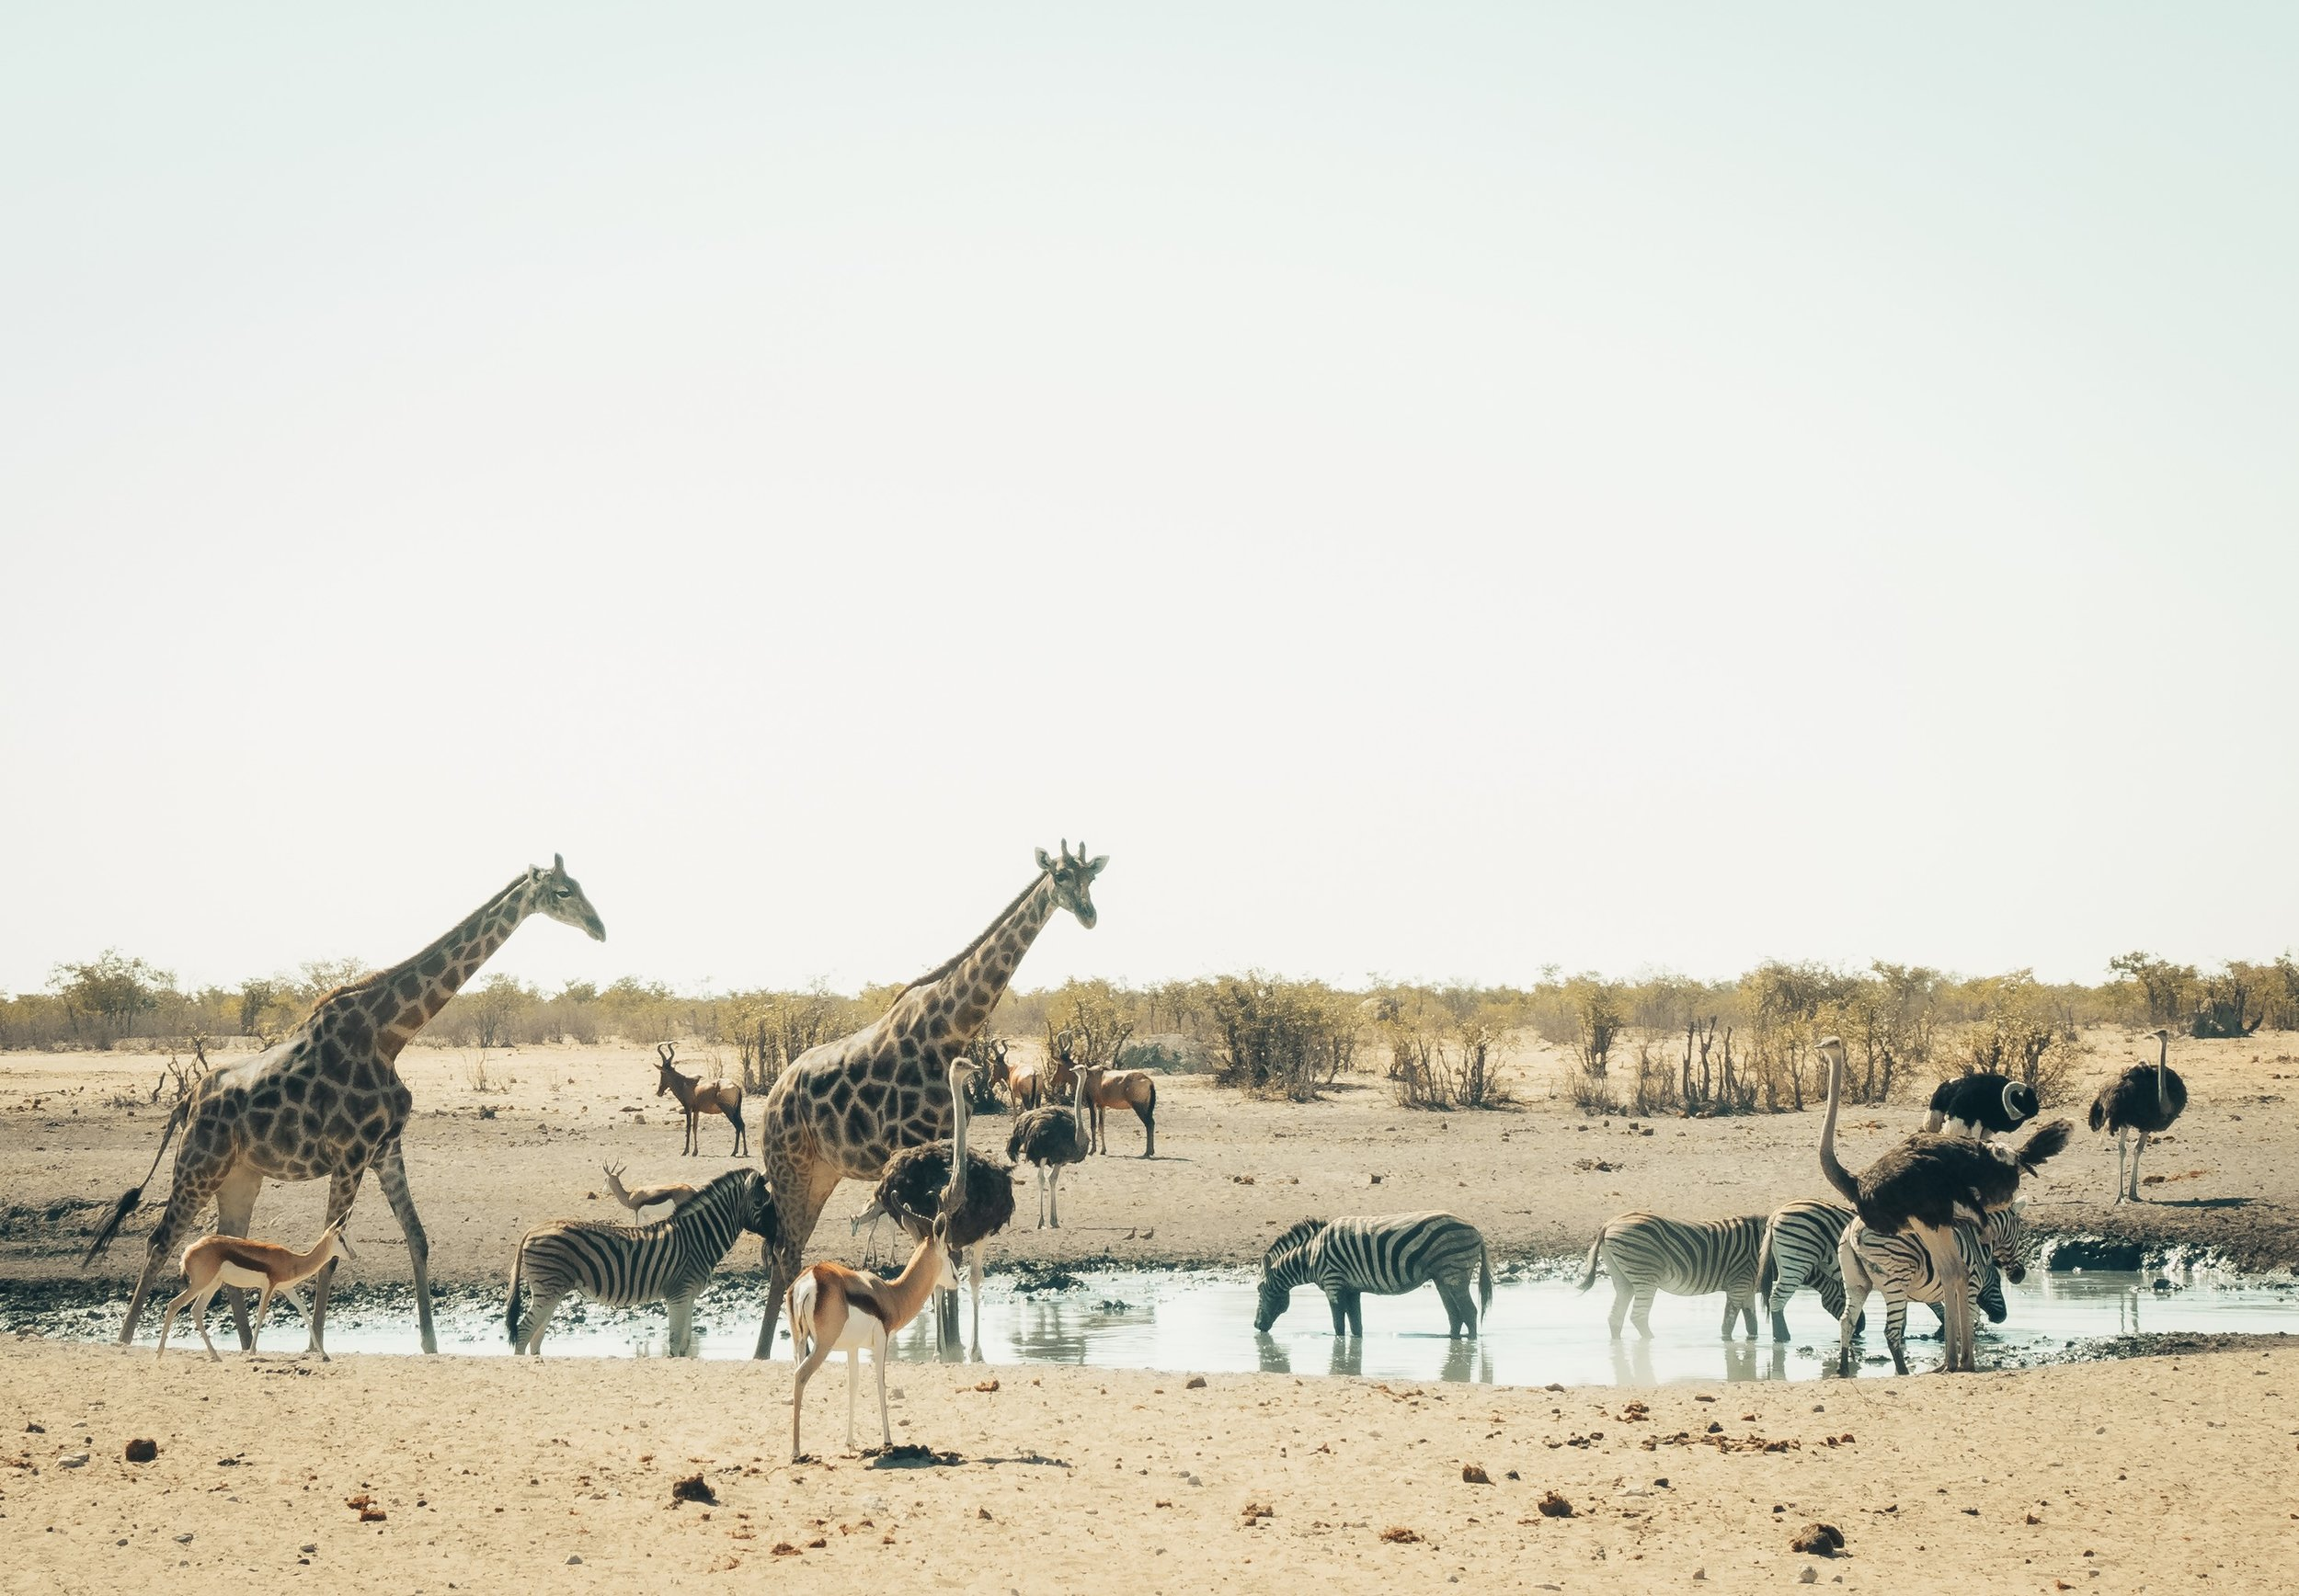 Eastern Etosha: the early afternoon crowd at the waterhole